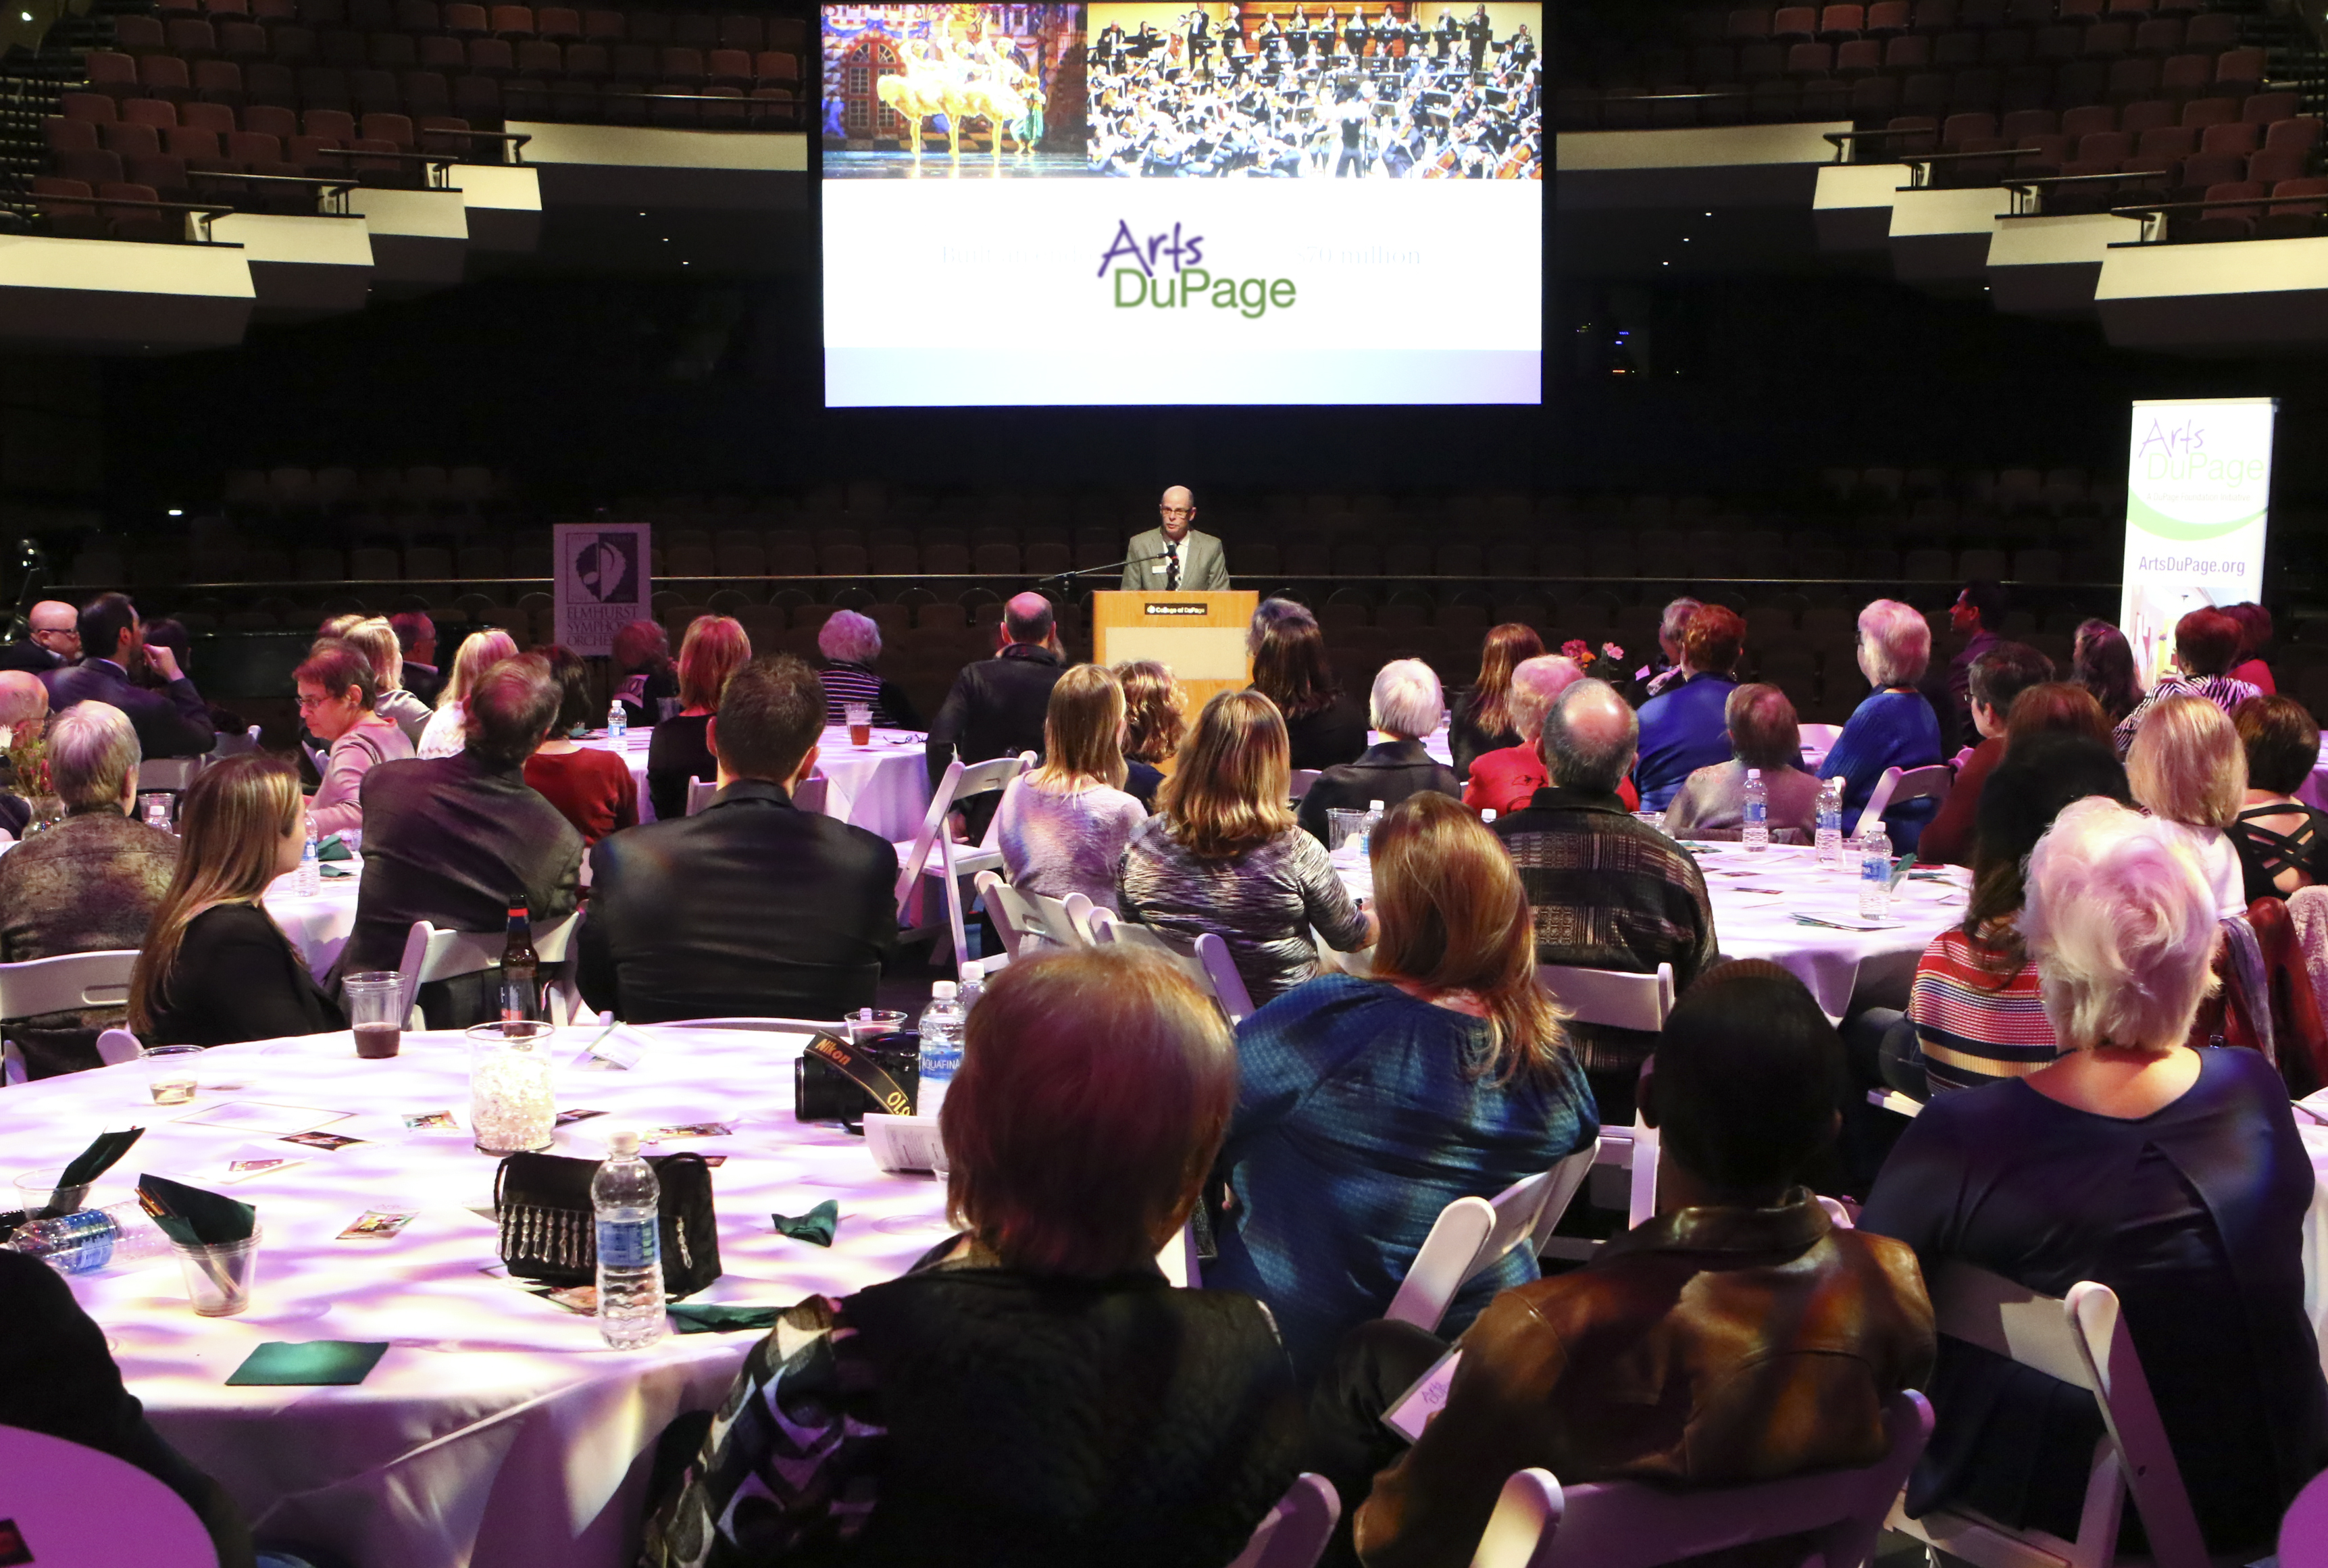 DuPage Foundation Celebrates Launch of New Arts DuPage Online Resource